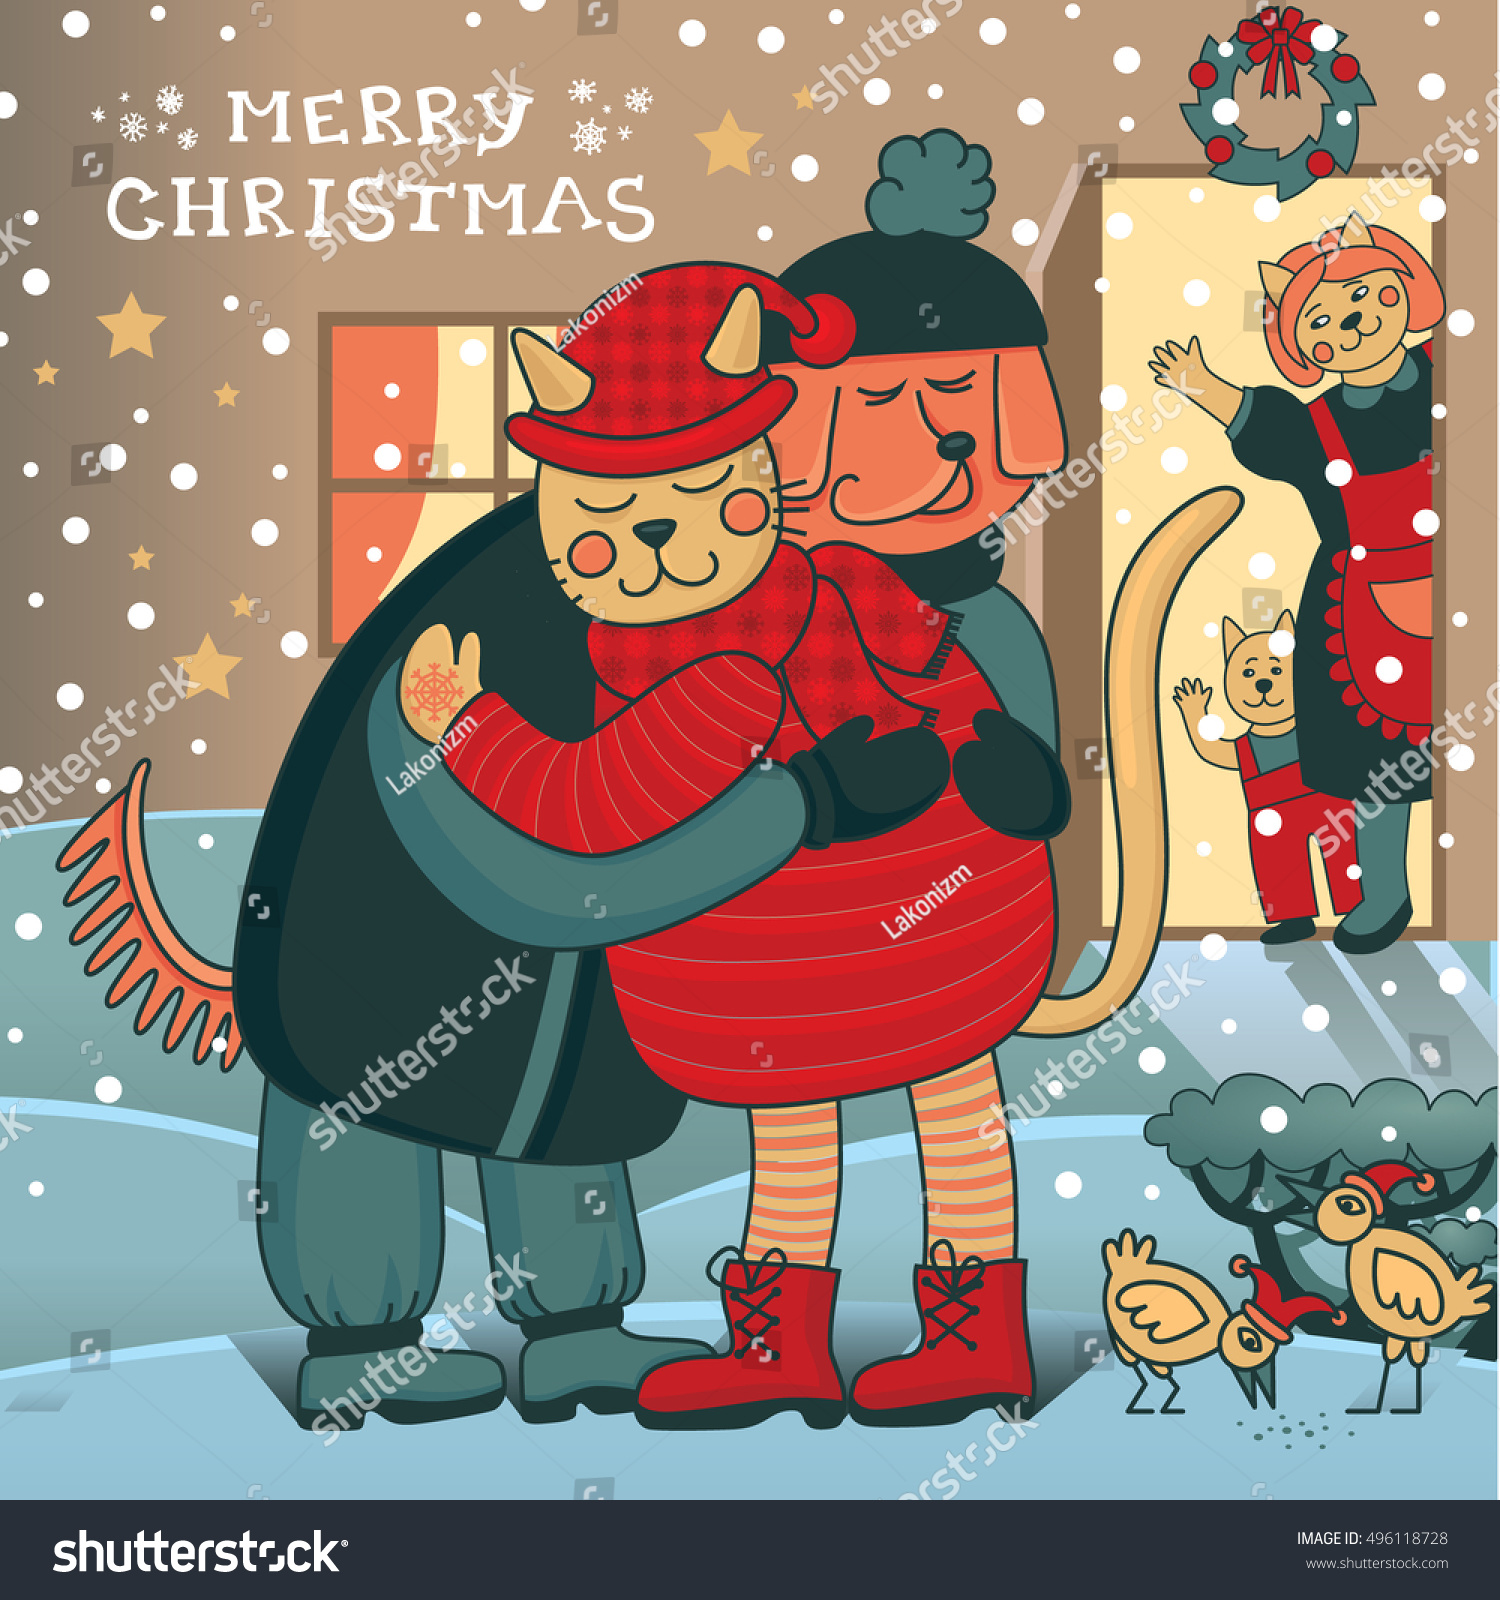 Winter Hugs Merry Christmas Card Two Stock Vector (Royalty Free ...